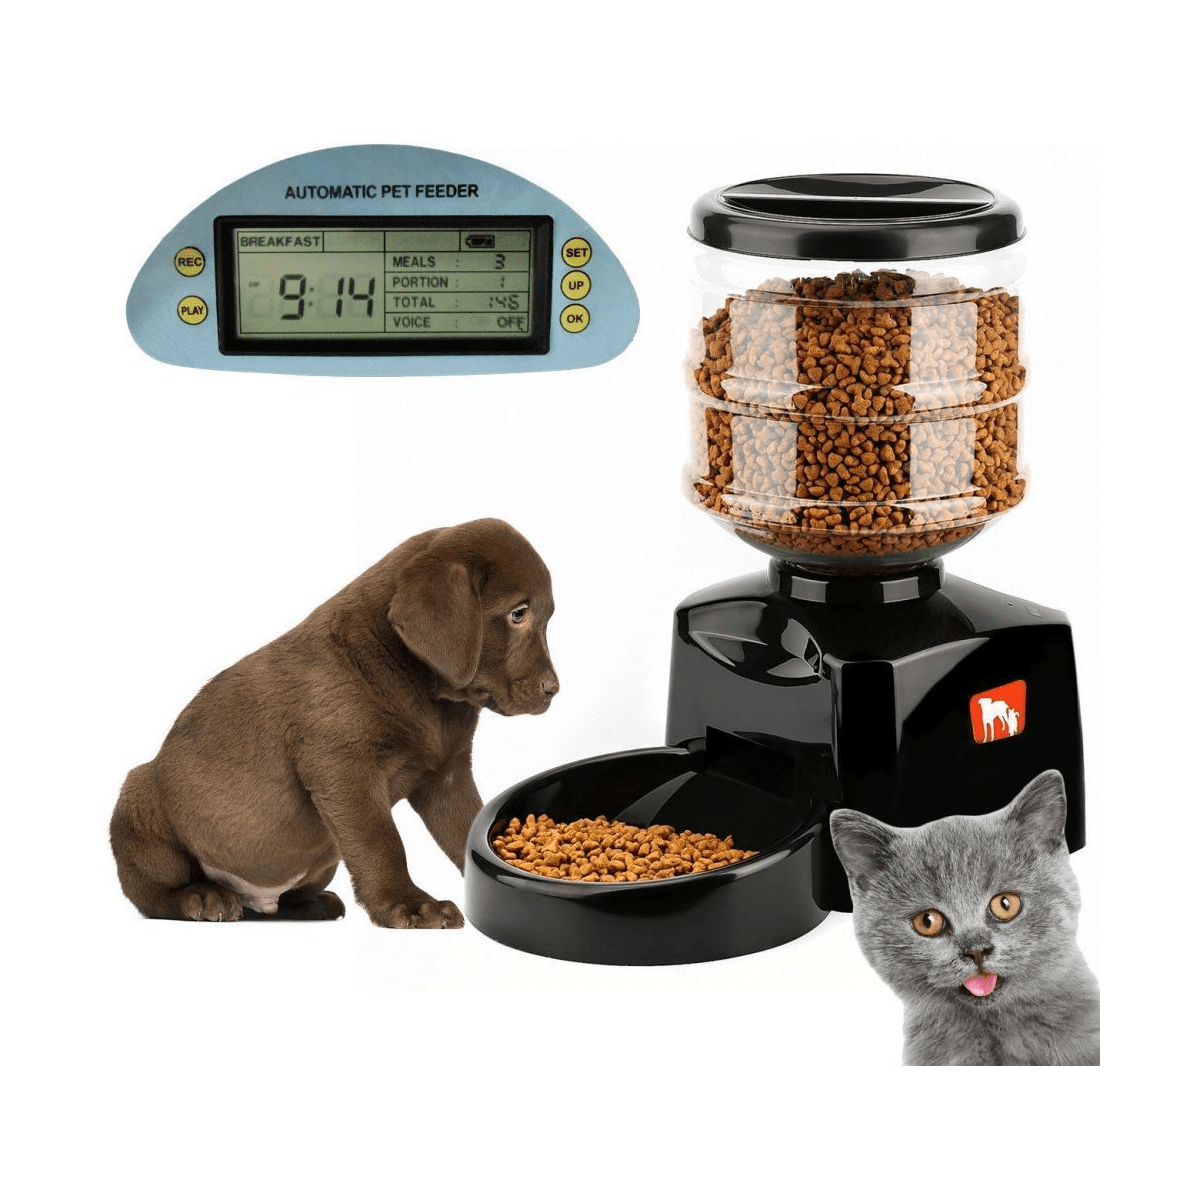 Large Automatic Pet Feeder Dry Food Dispenser Station Programmable Timer with Portion Control